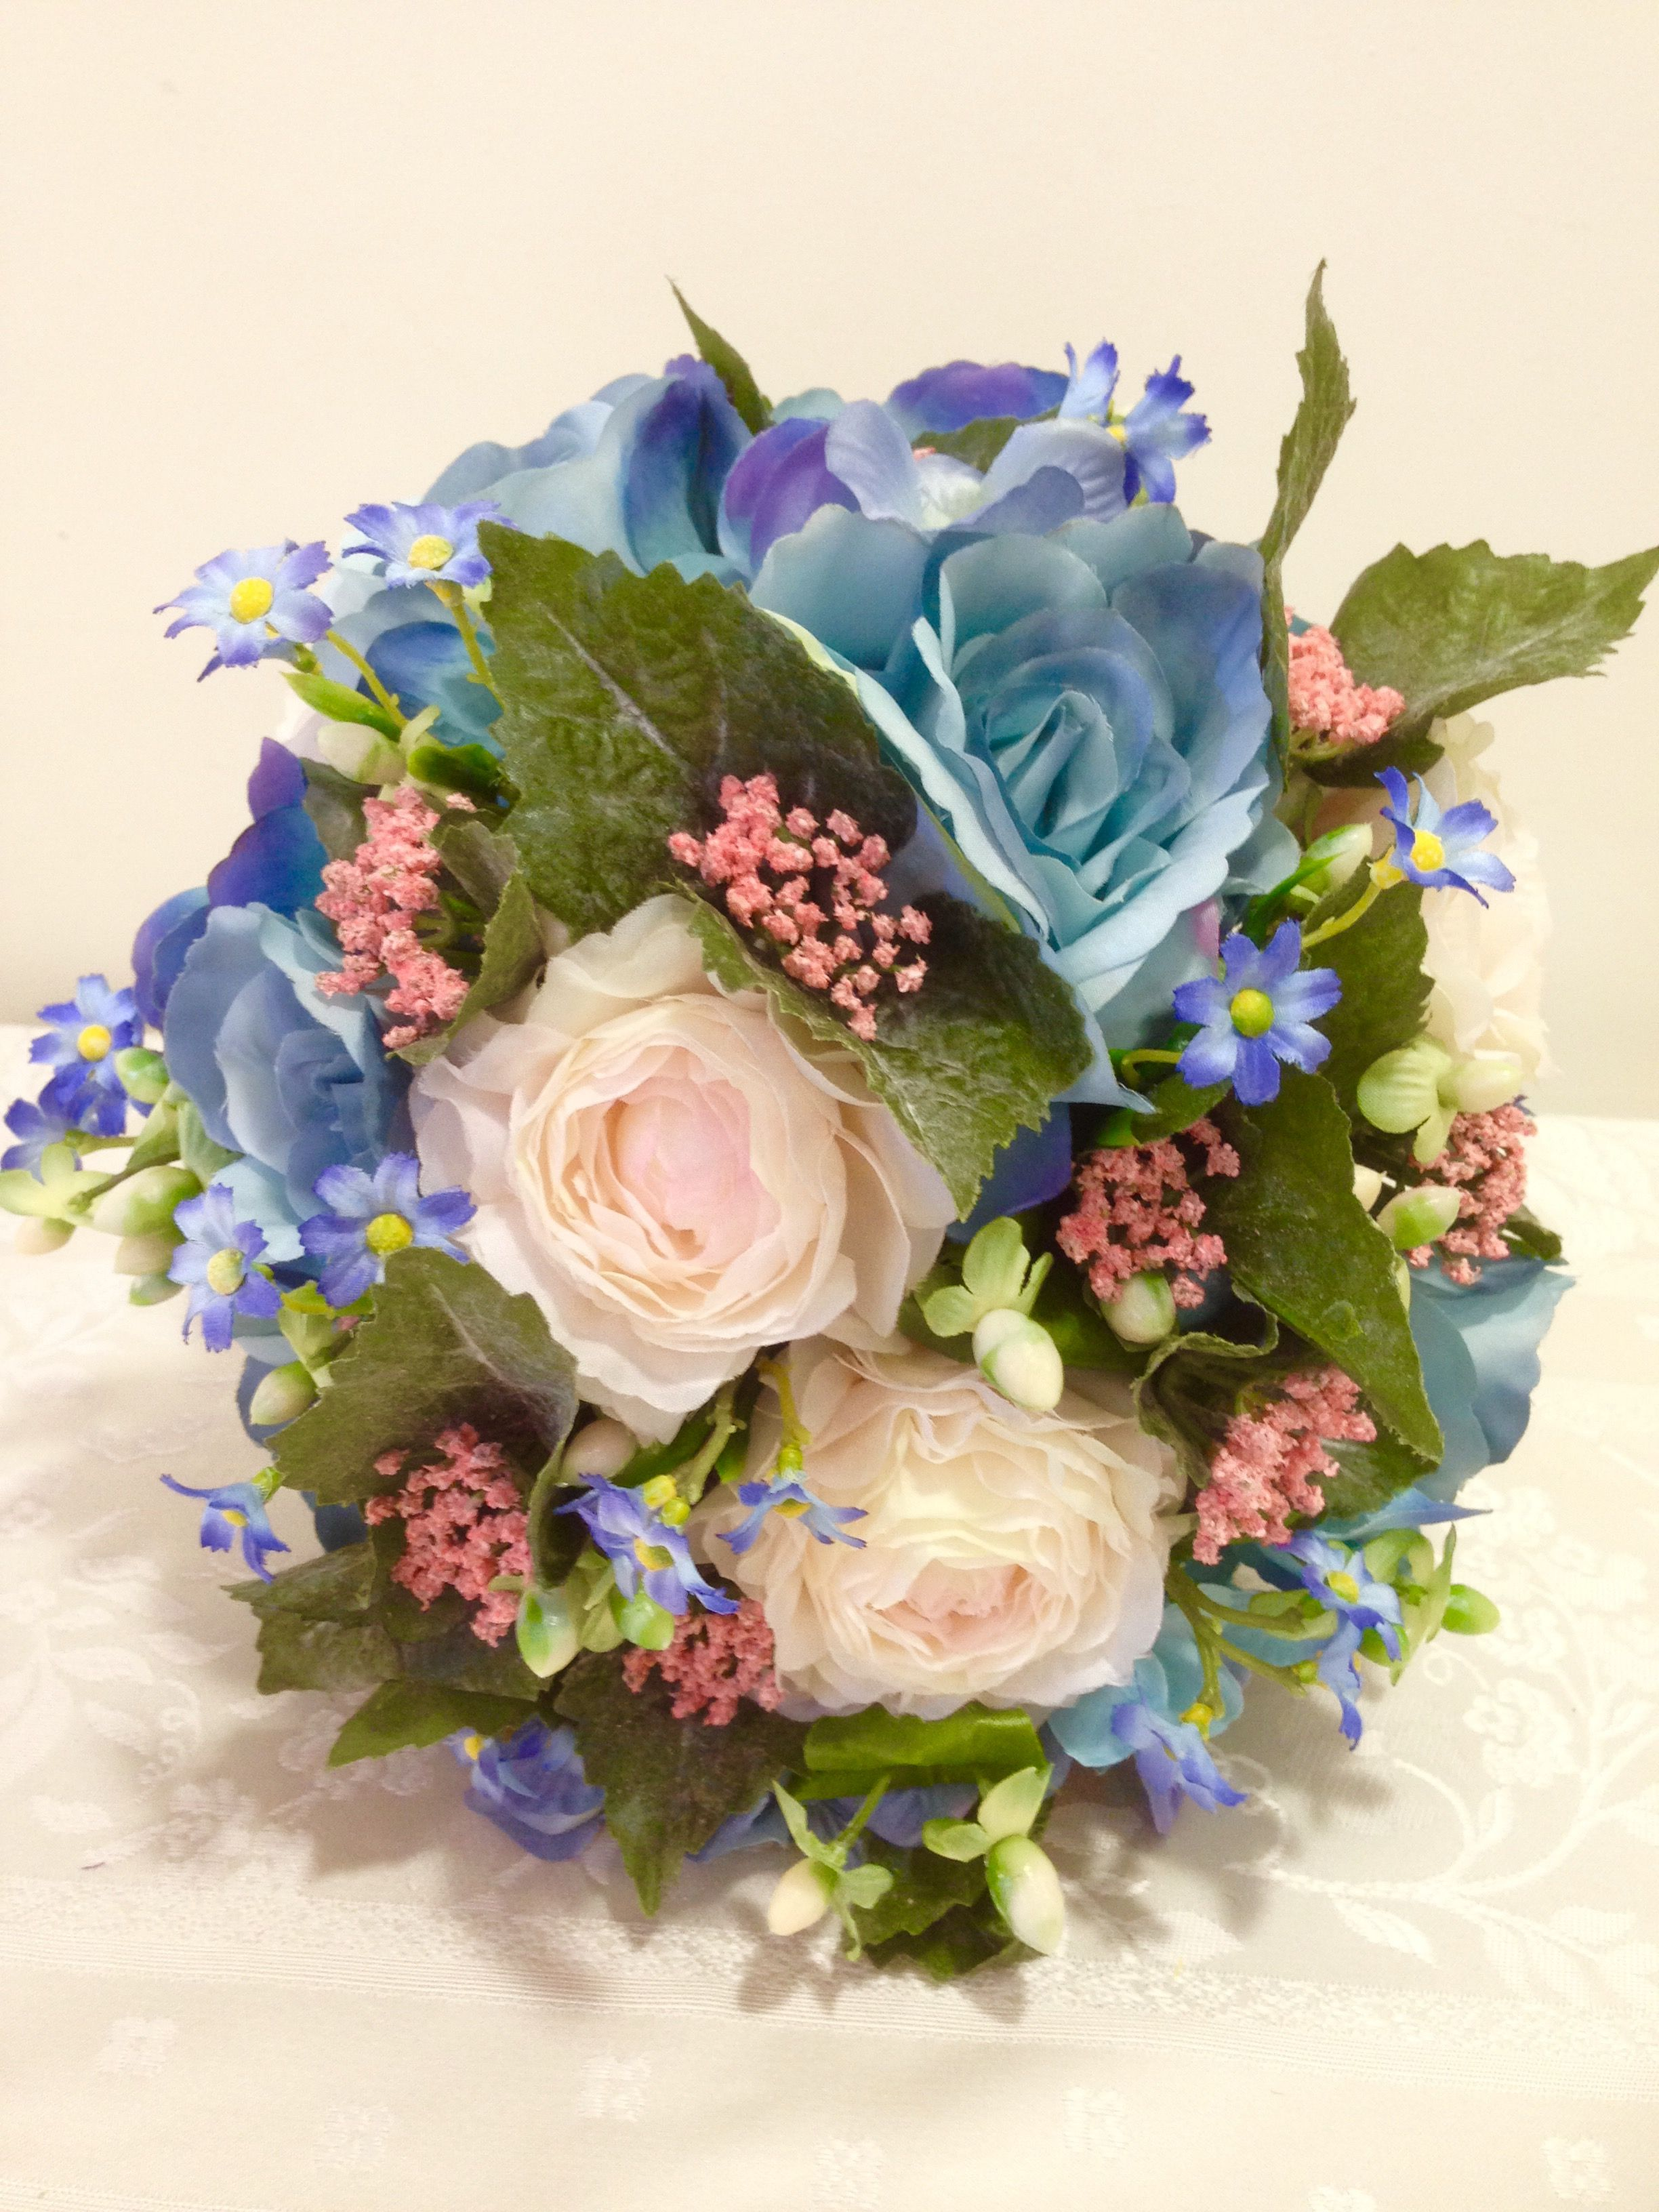 Peach and blue bouquet in everlasting flowers roses ranunculus and peach and blue bouquet in everlasting flowers roses ranunculus and hydrangea izmirmasajfo